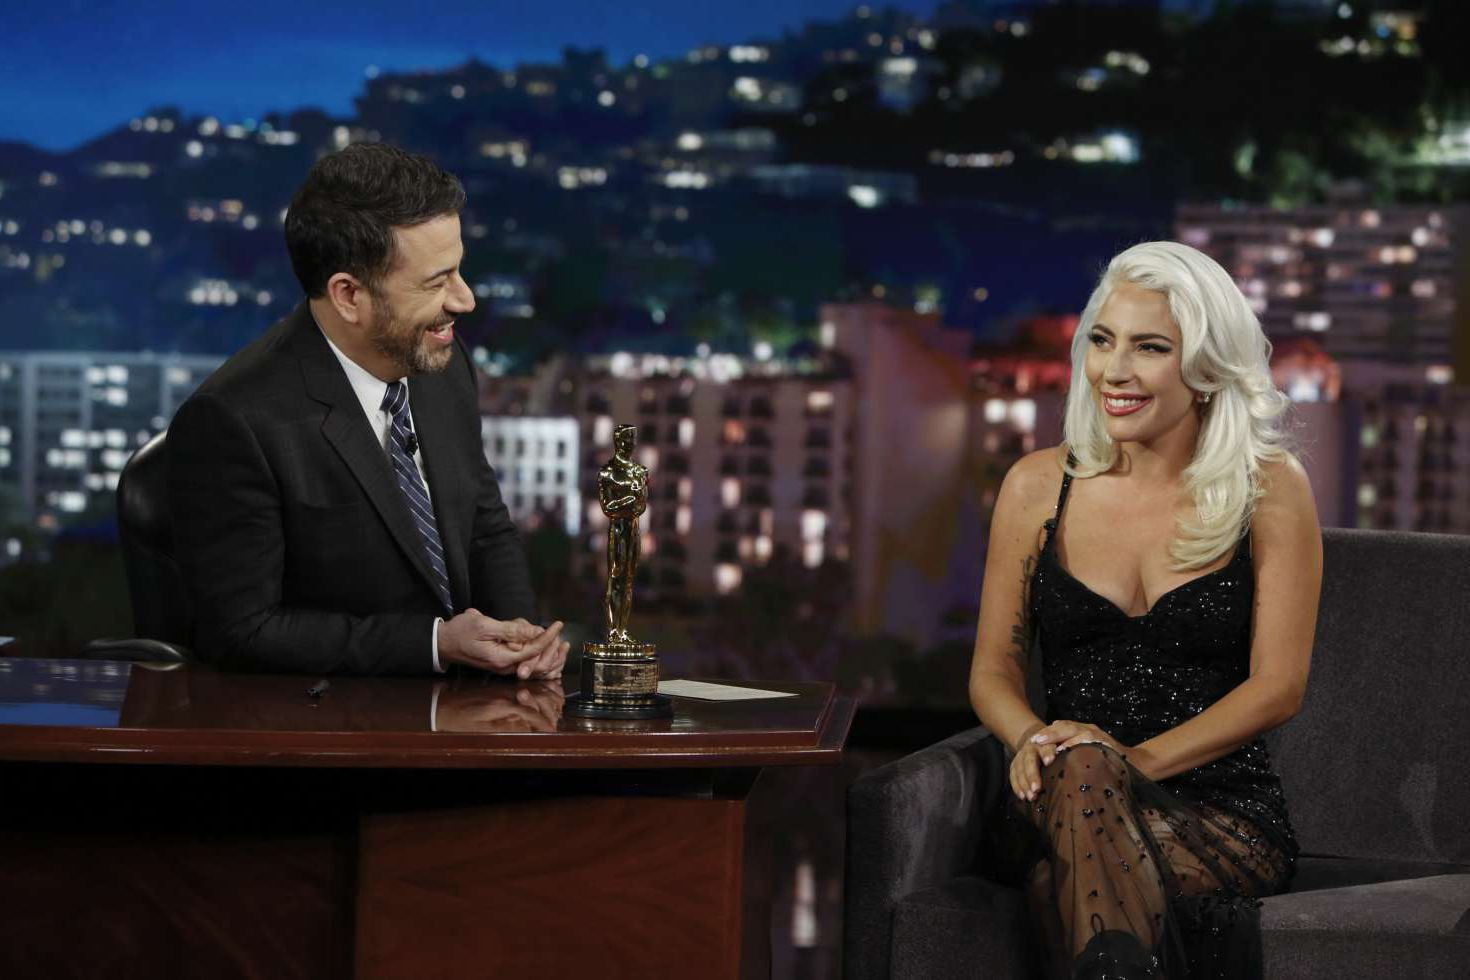 Lady Gaga with white hair at the Jimmy Kimmel Live in LA, 2019